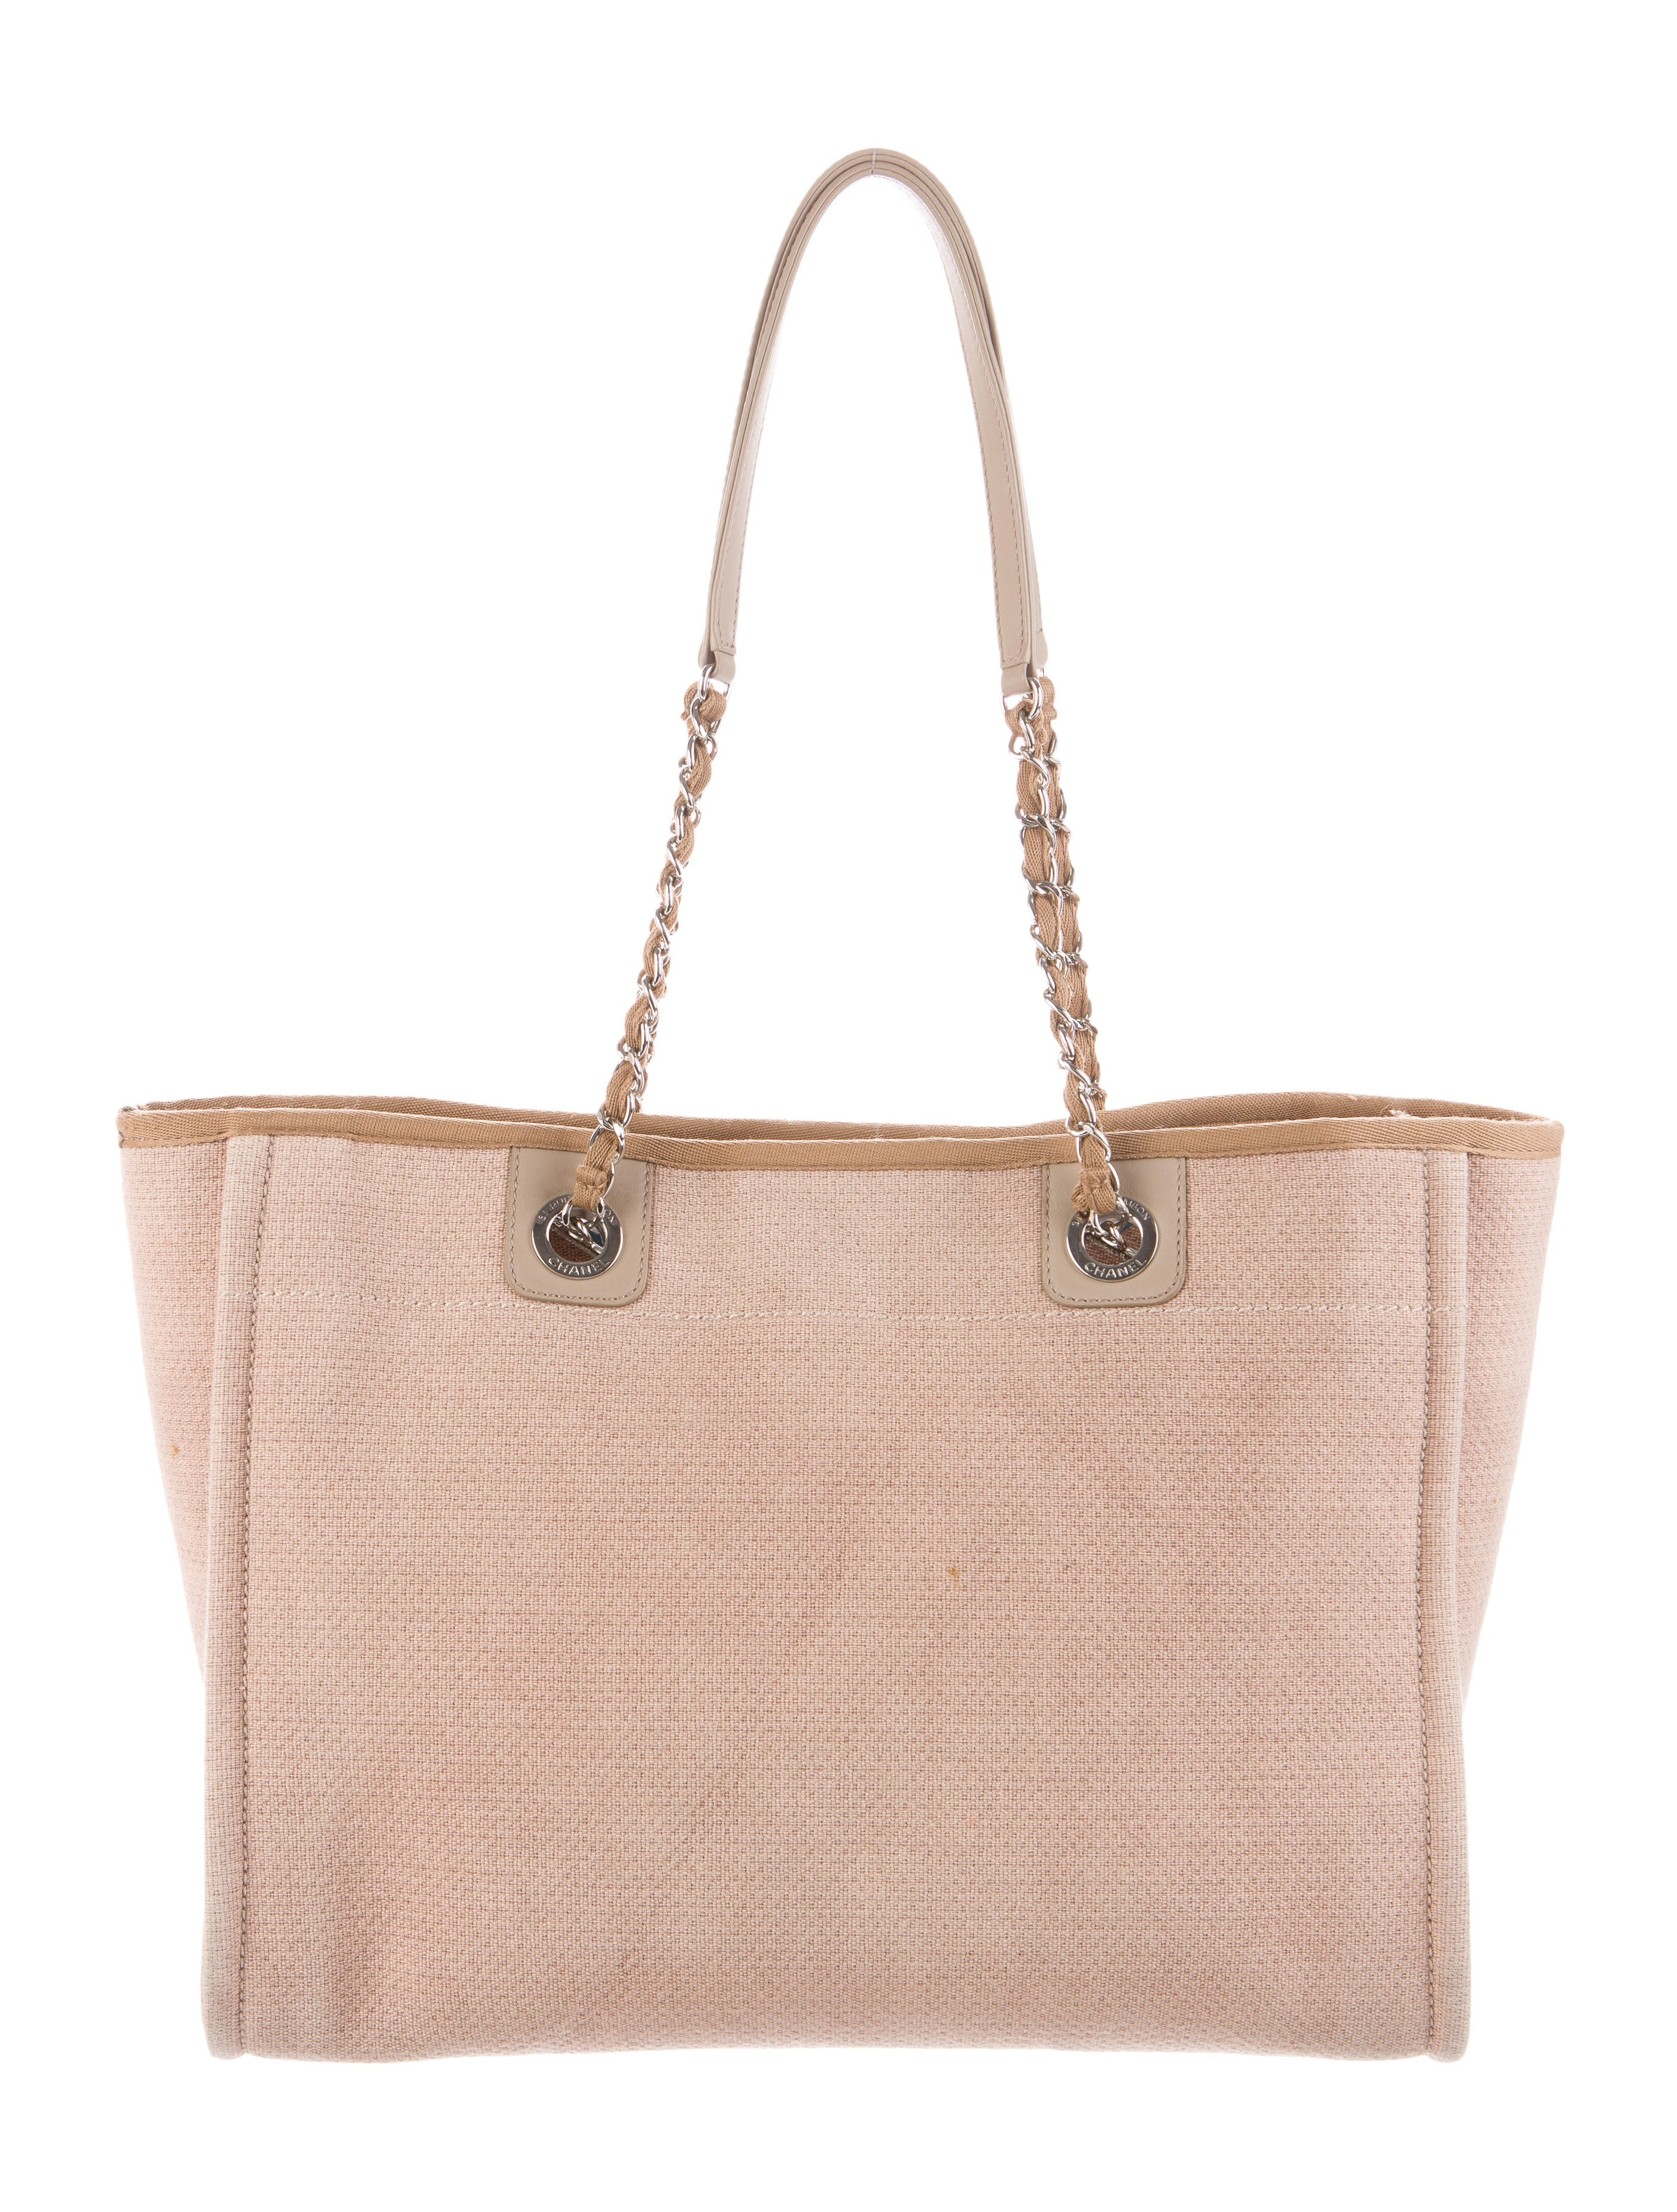 37ce1a5a0955 Chanel Small Deauville Tote Bag | Stanford Center for Opportunity ...